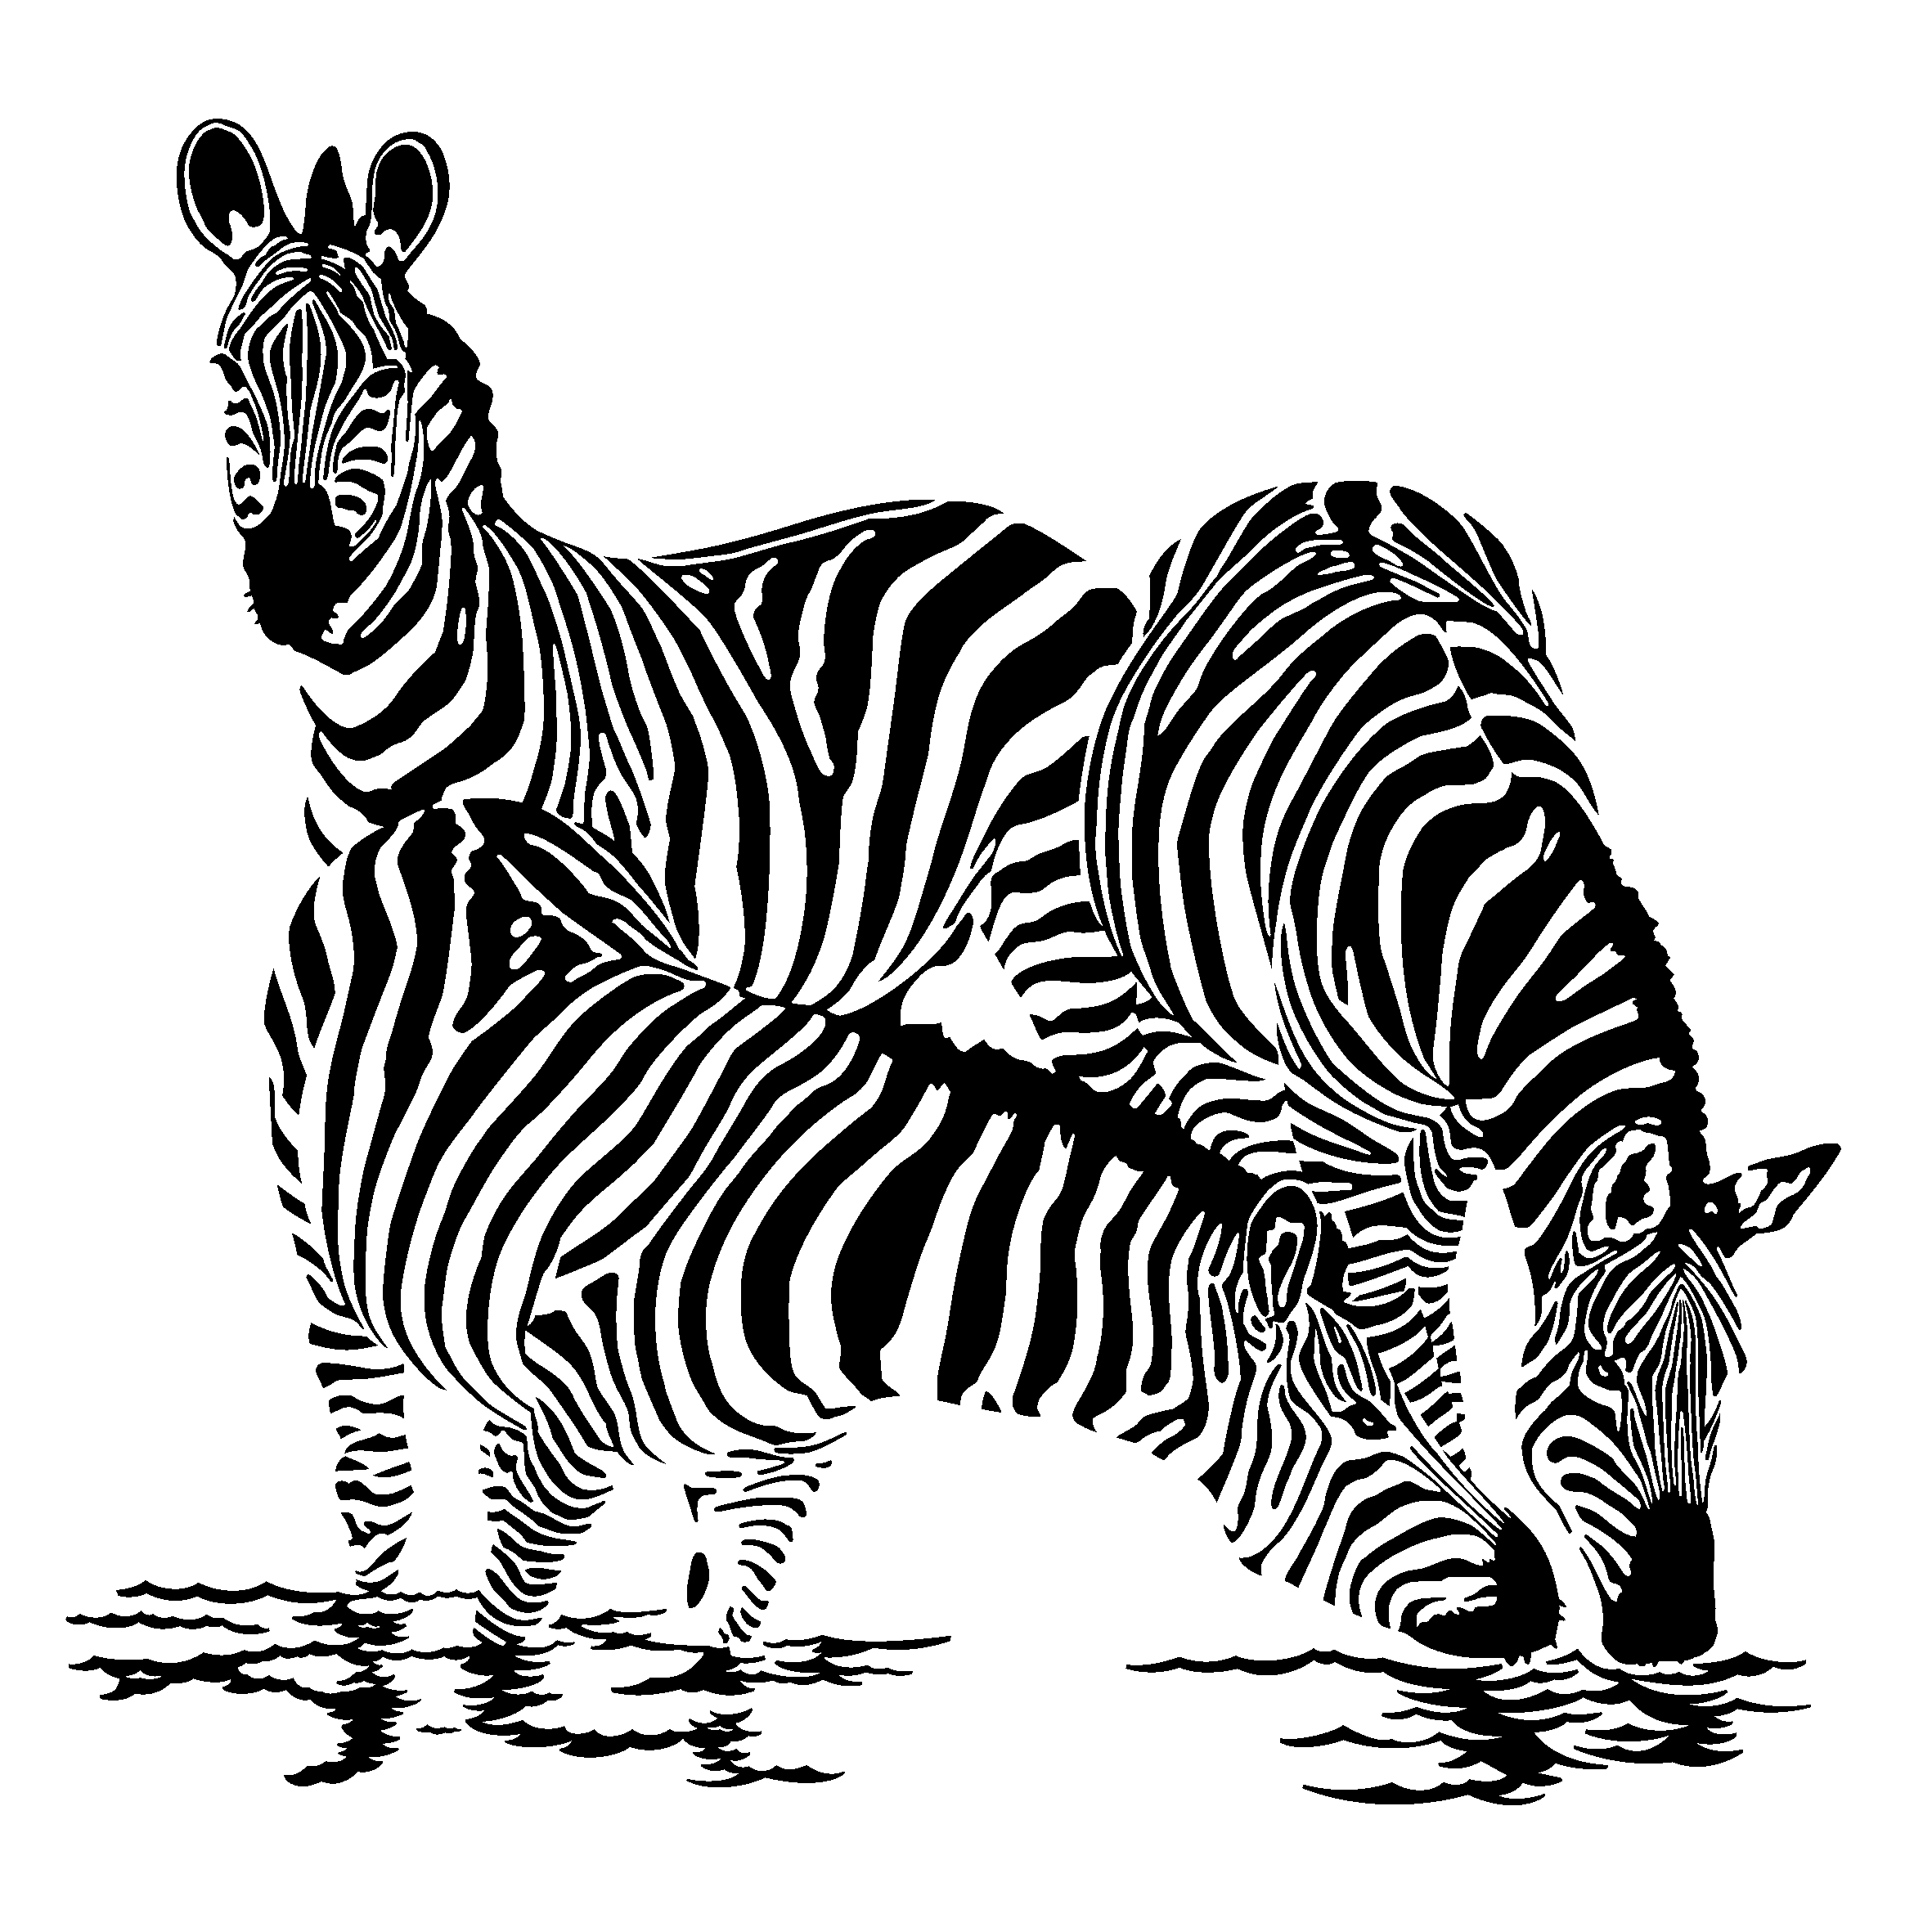 zebra colouring pages to print zebra colouring pages to print colouring to zebra pages print